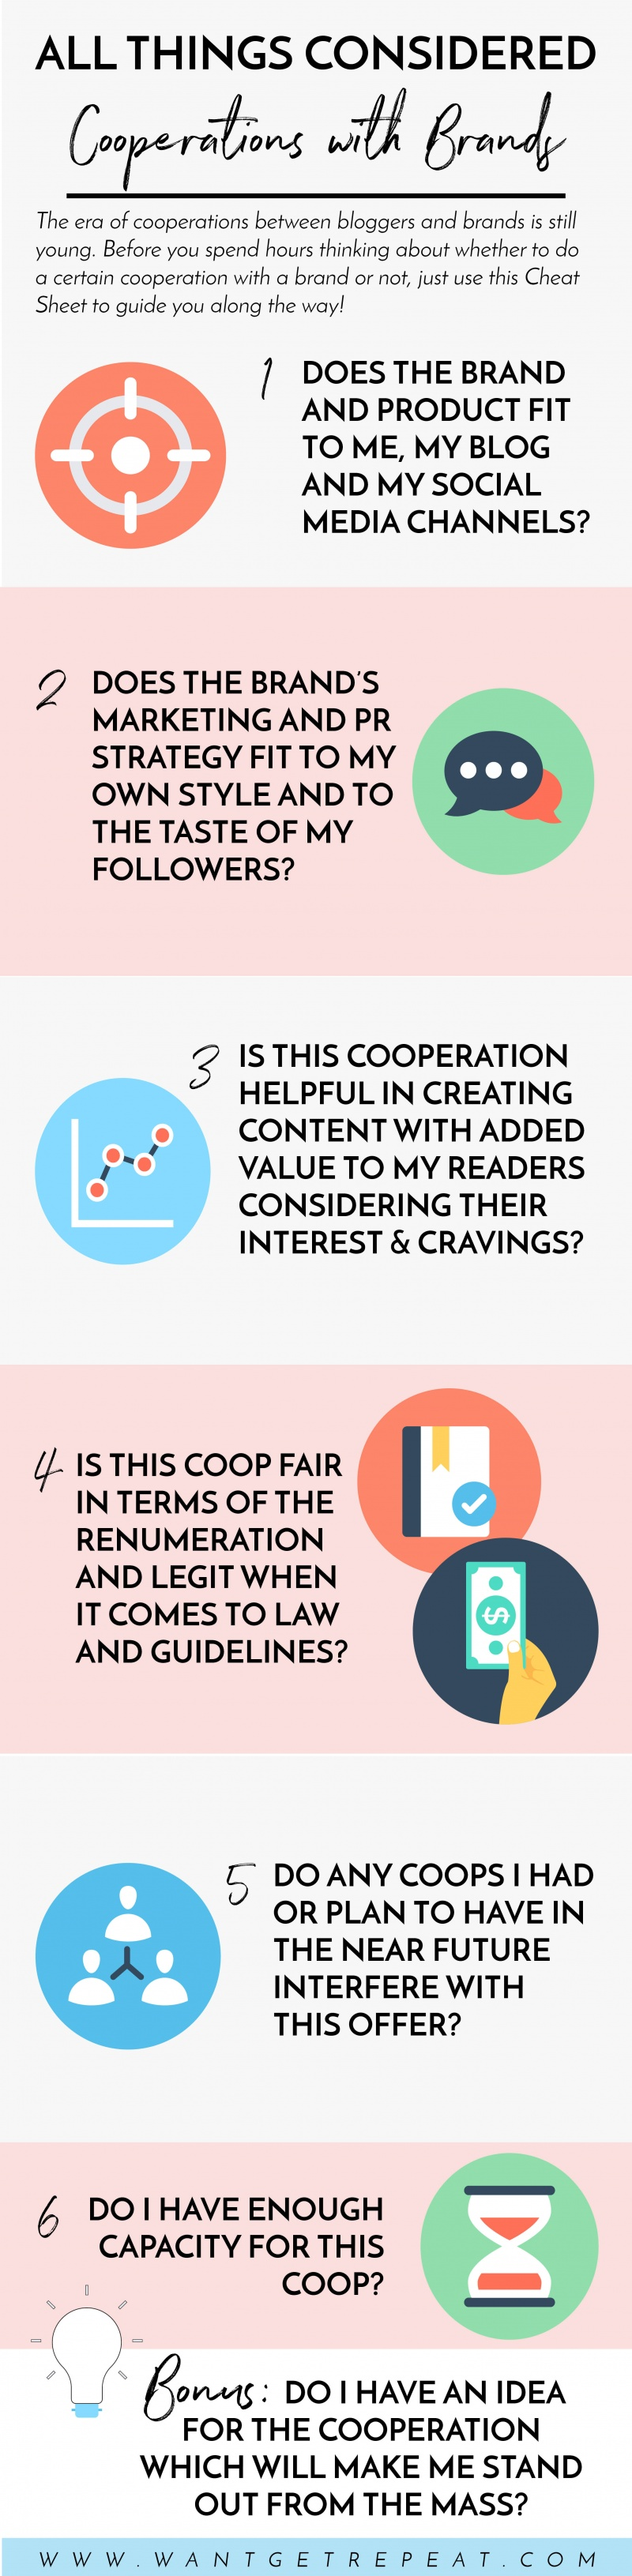 blogger cooperations with brands cheat sheet want get repeat blog